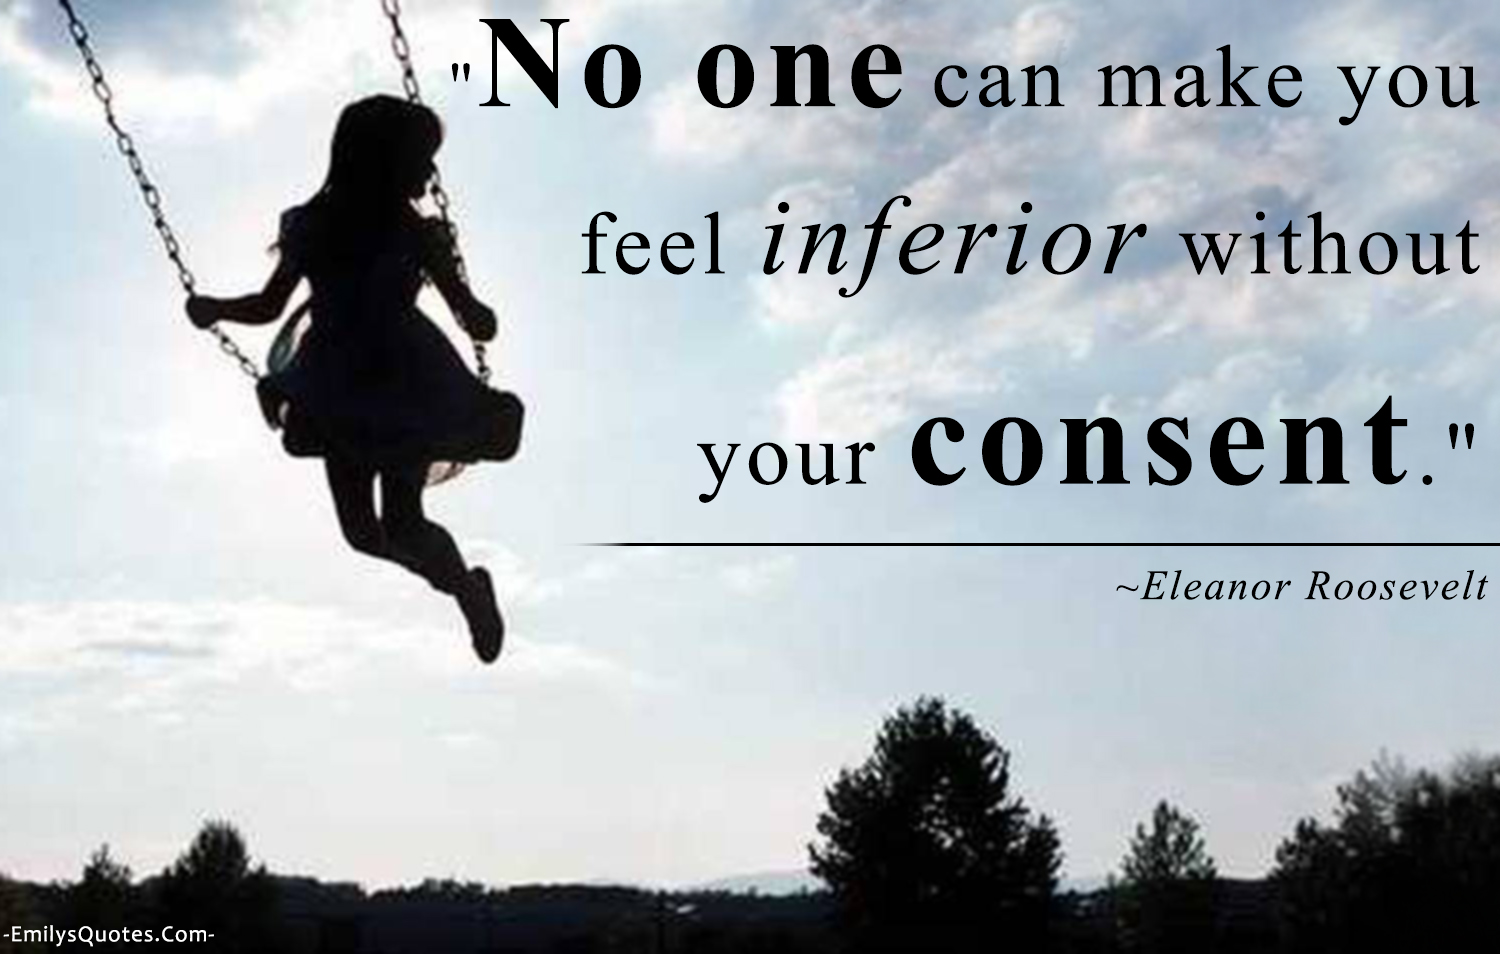 EmilysQuotes.Com - feelings, inferior, understanding, Eleanor Roosevelt, approval, believe